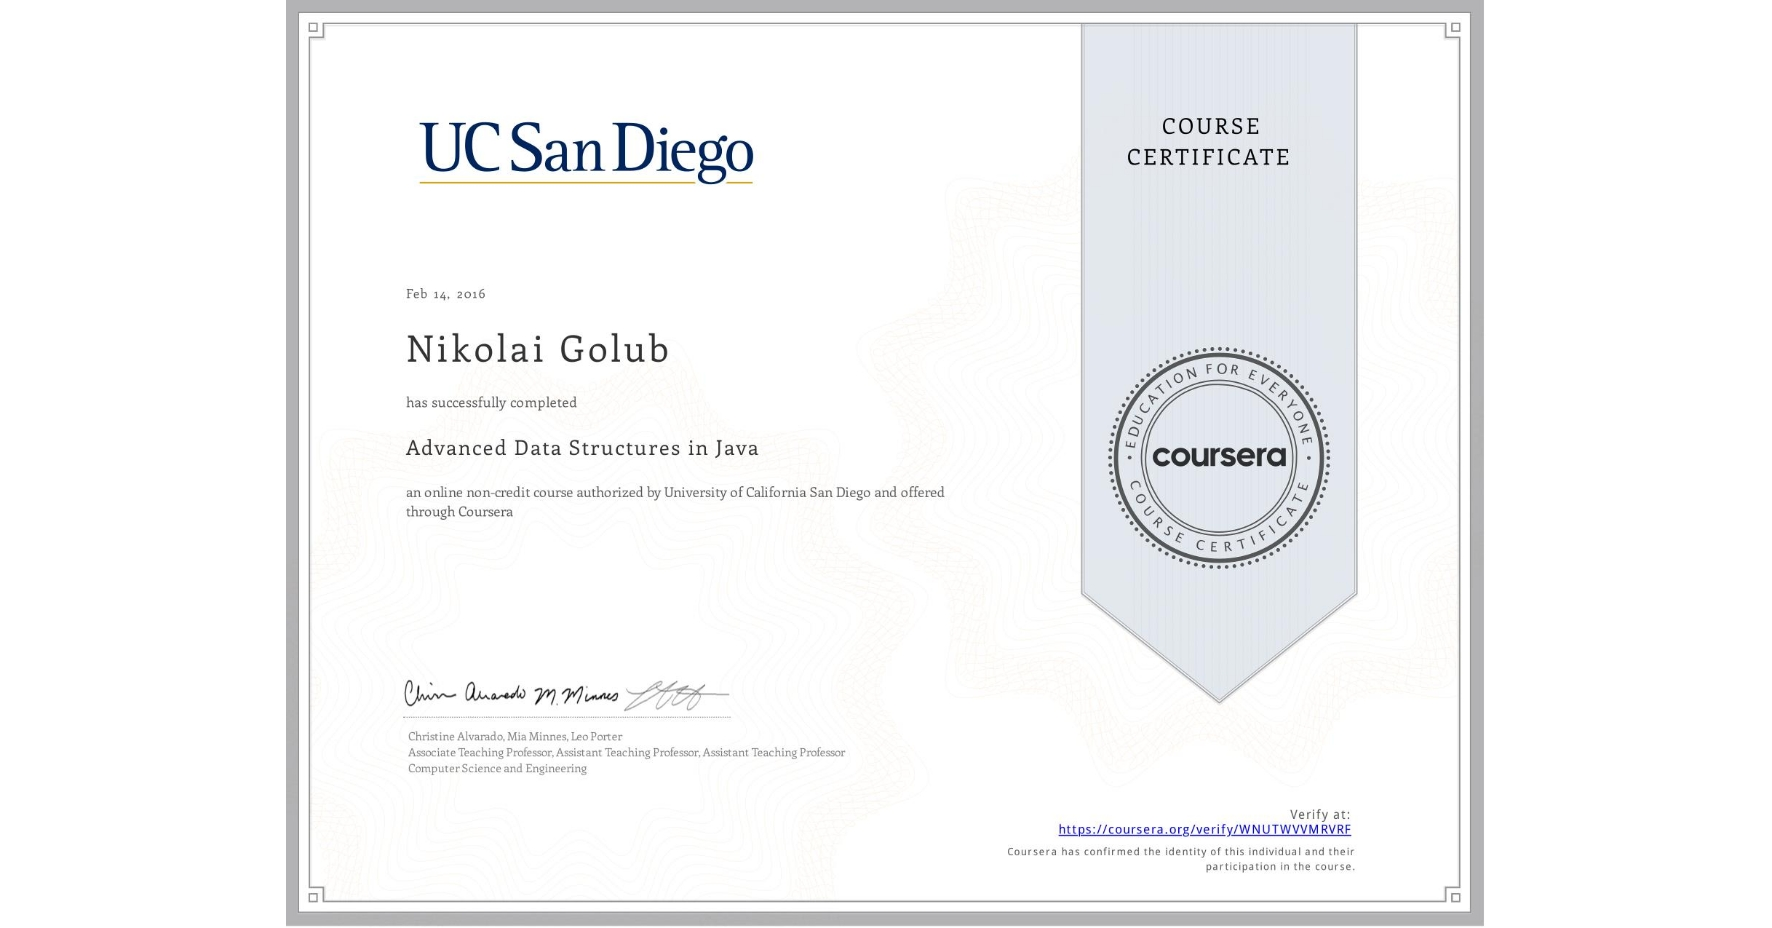 View certificate for Nikolai Golub, Advanced Data Structures in Java, an online non-credit course authorized by University of California San Diego and offered through Coursera